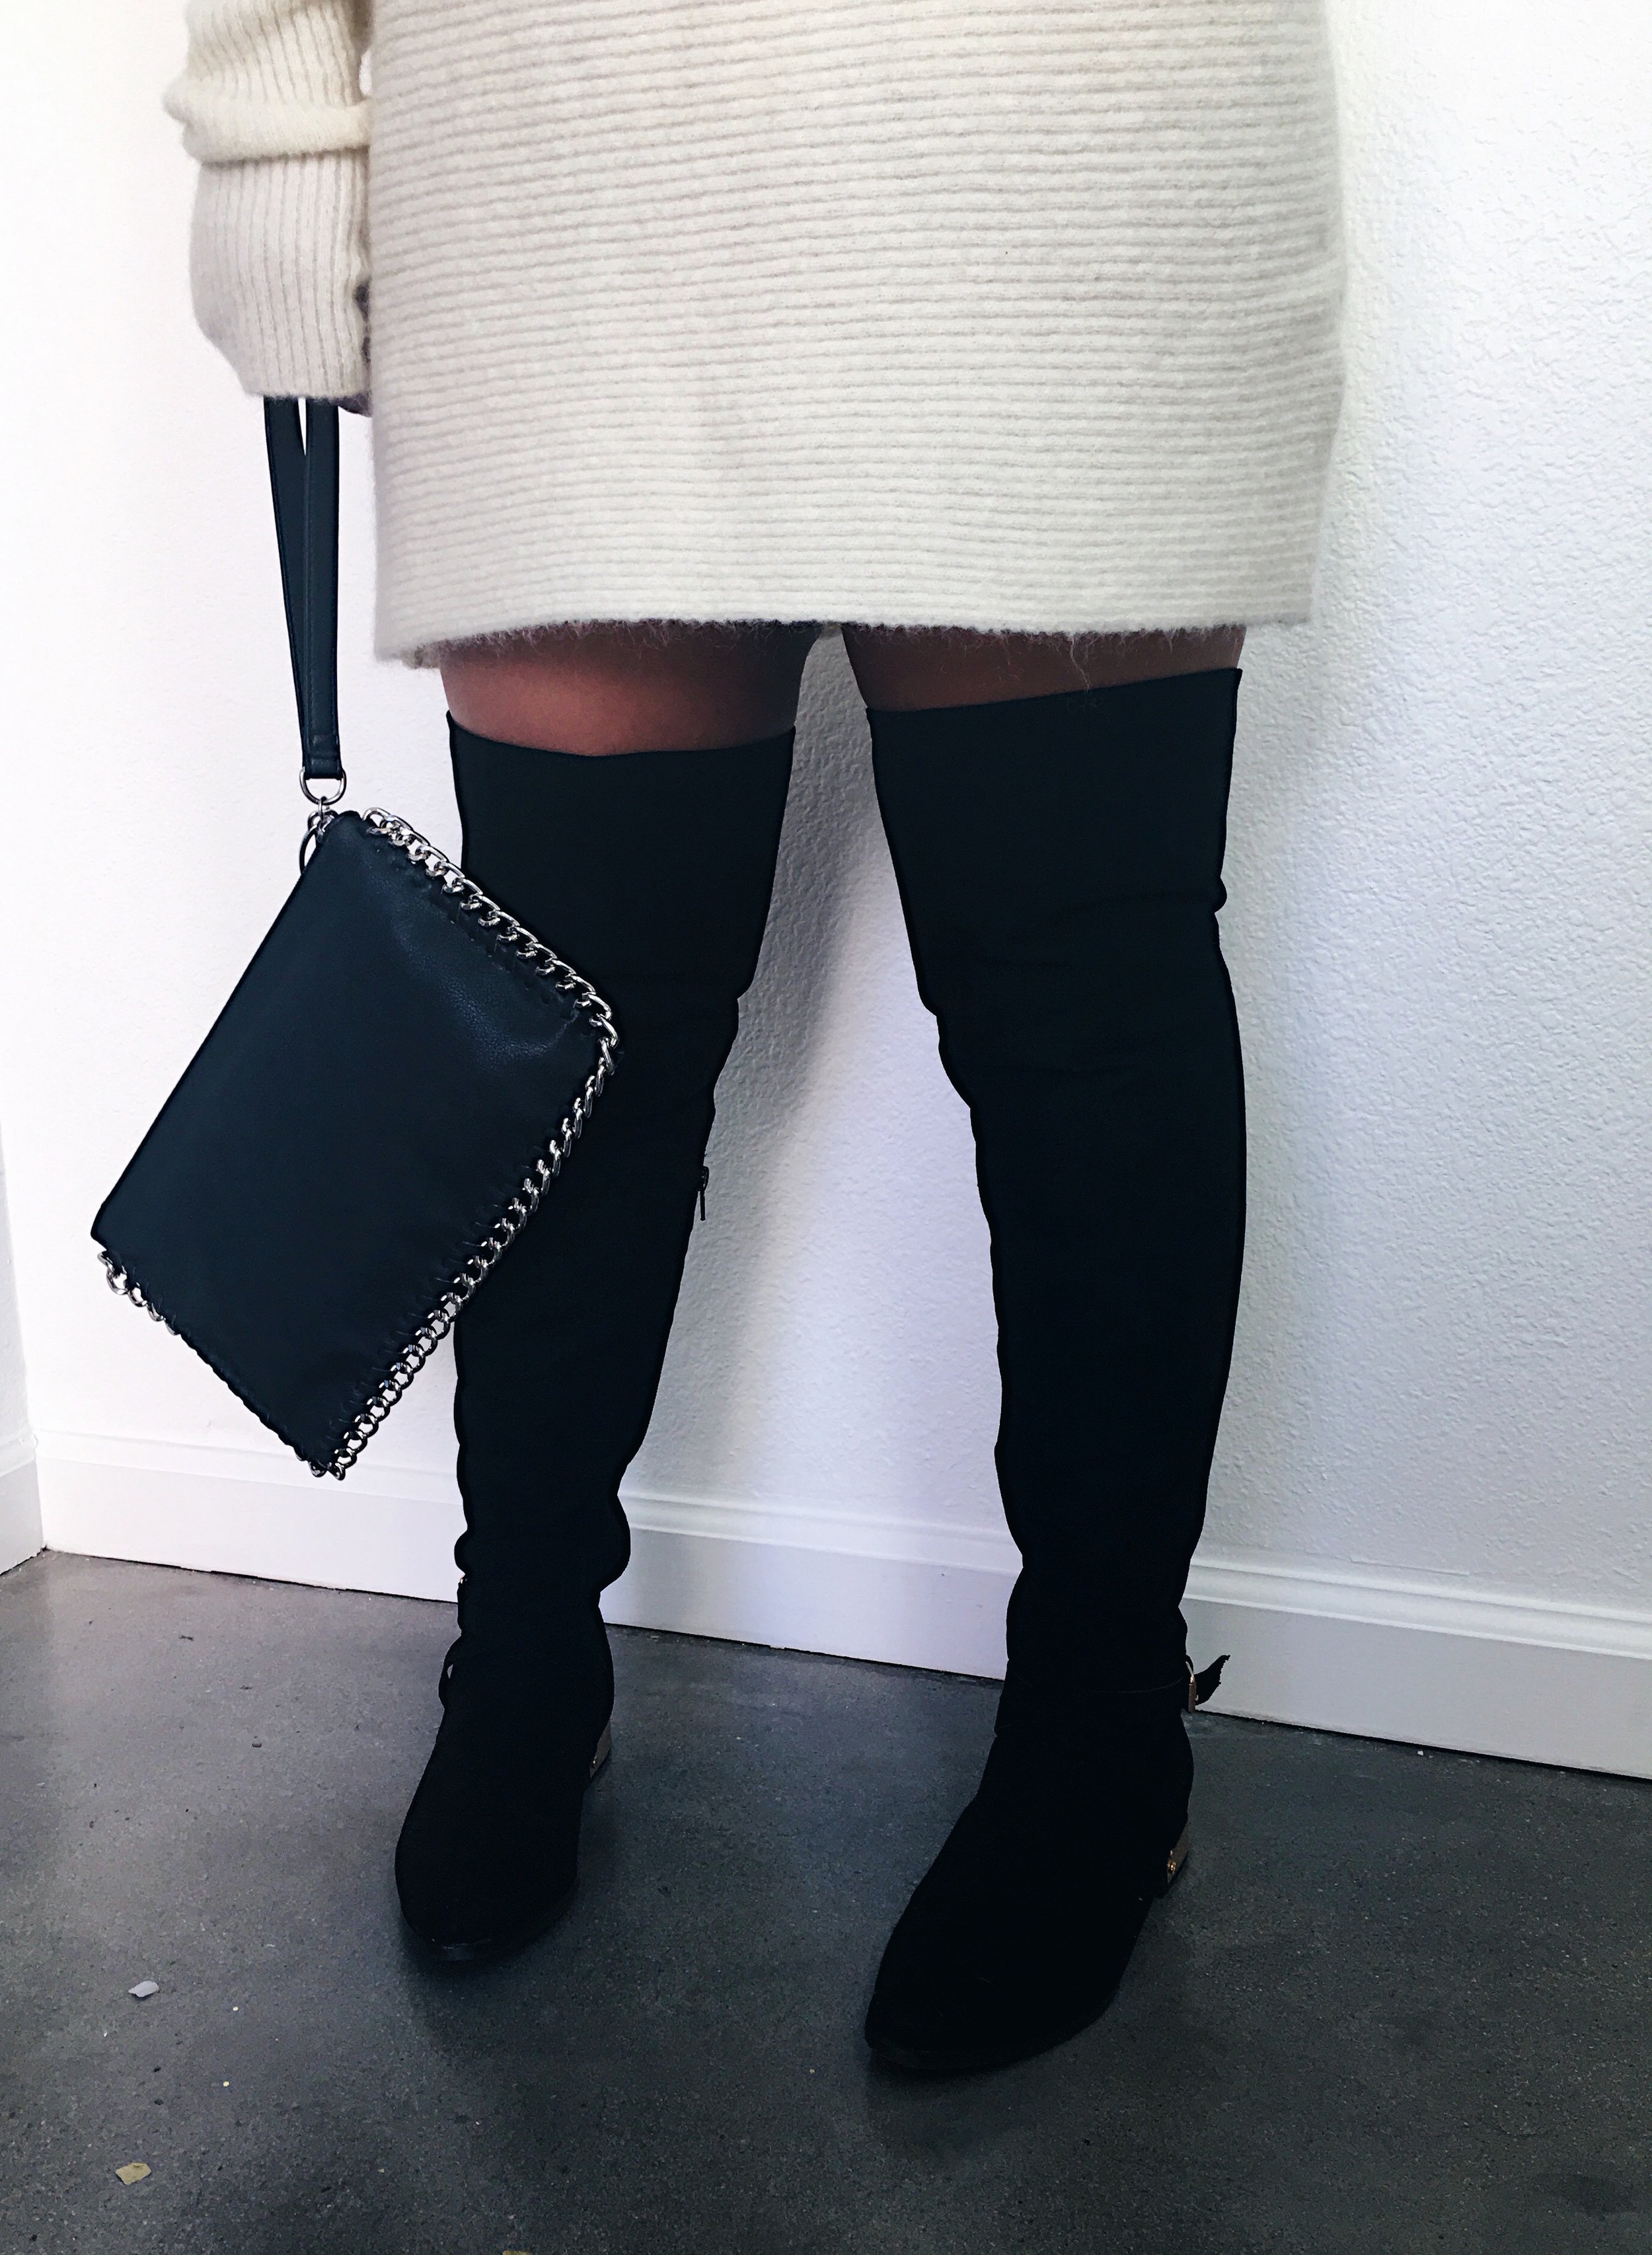 Black Wristlet with Chain Details & Suede Knee High Boots